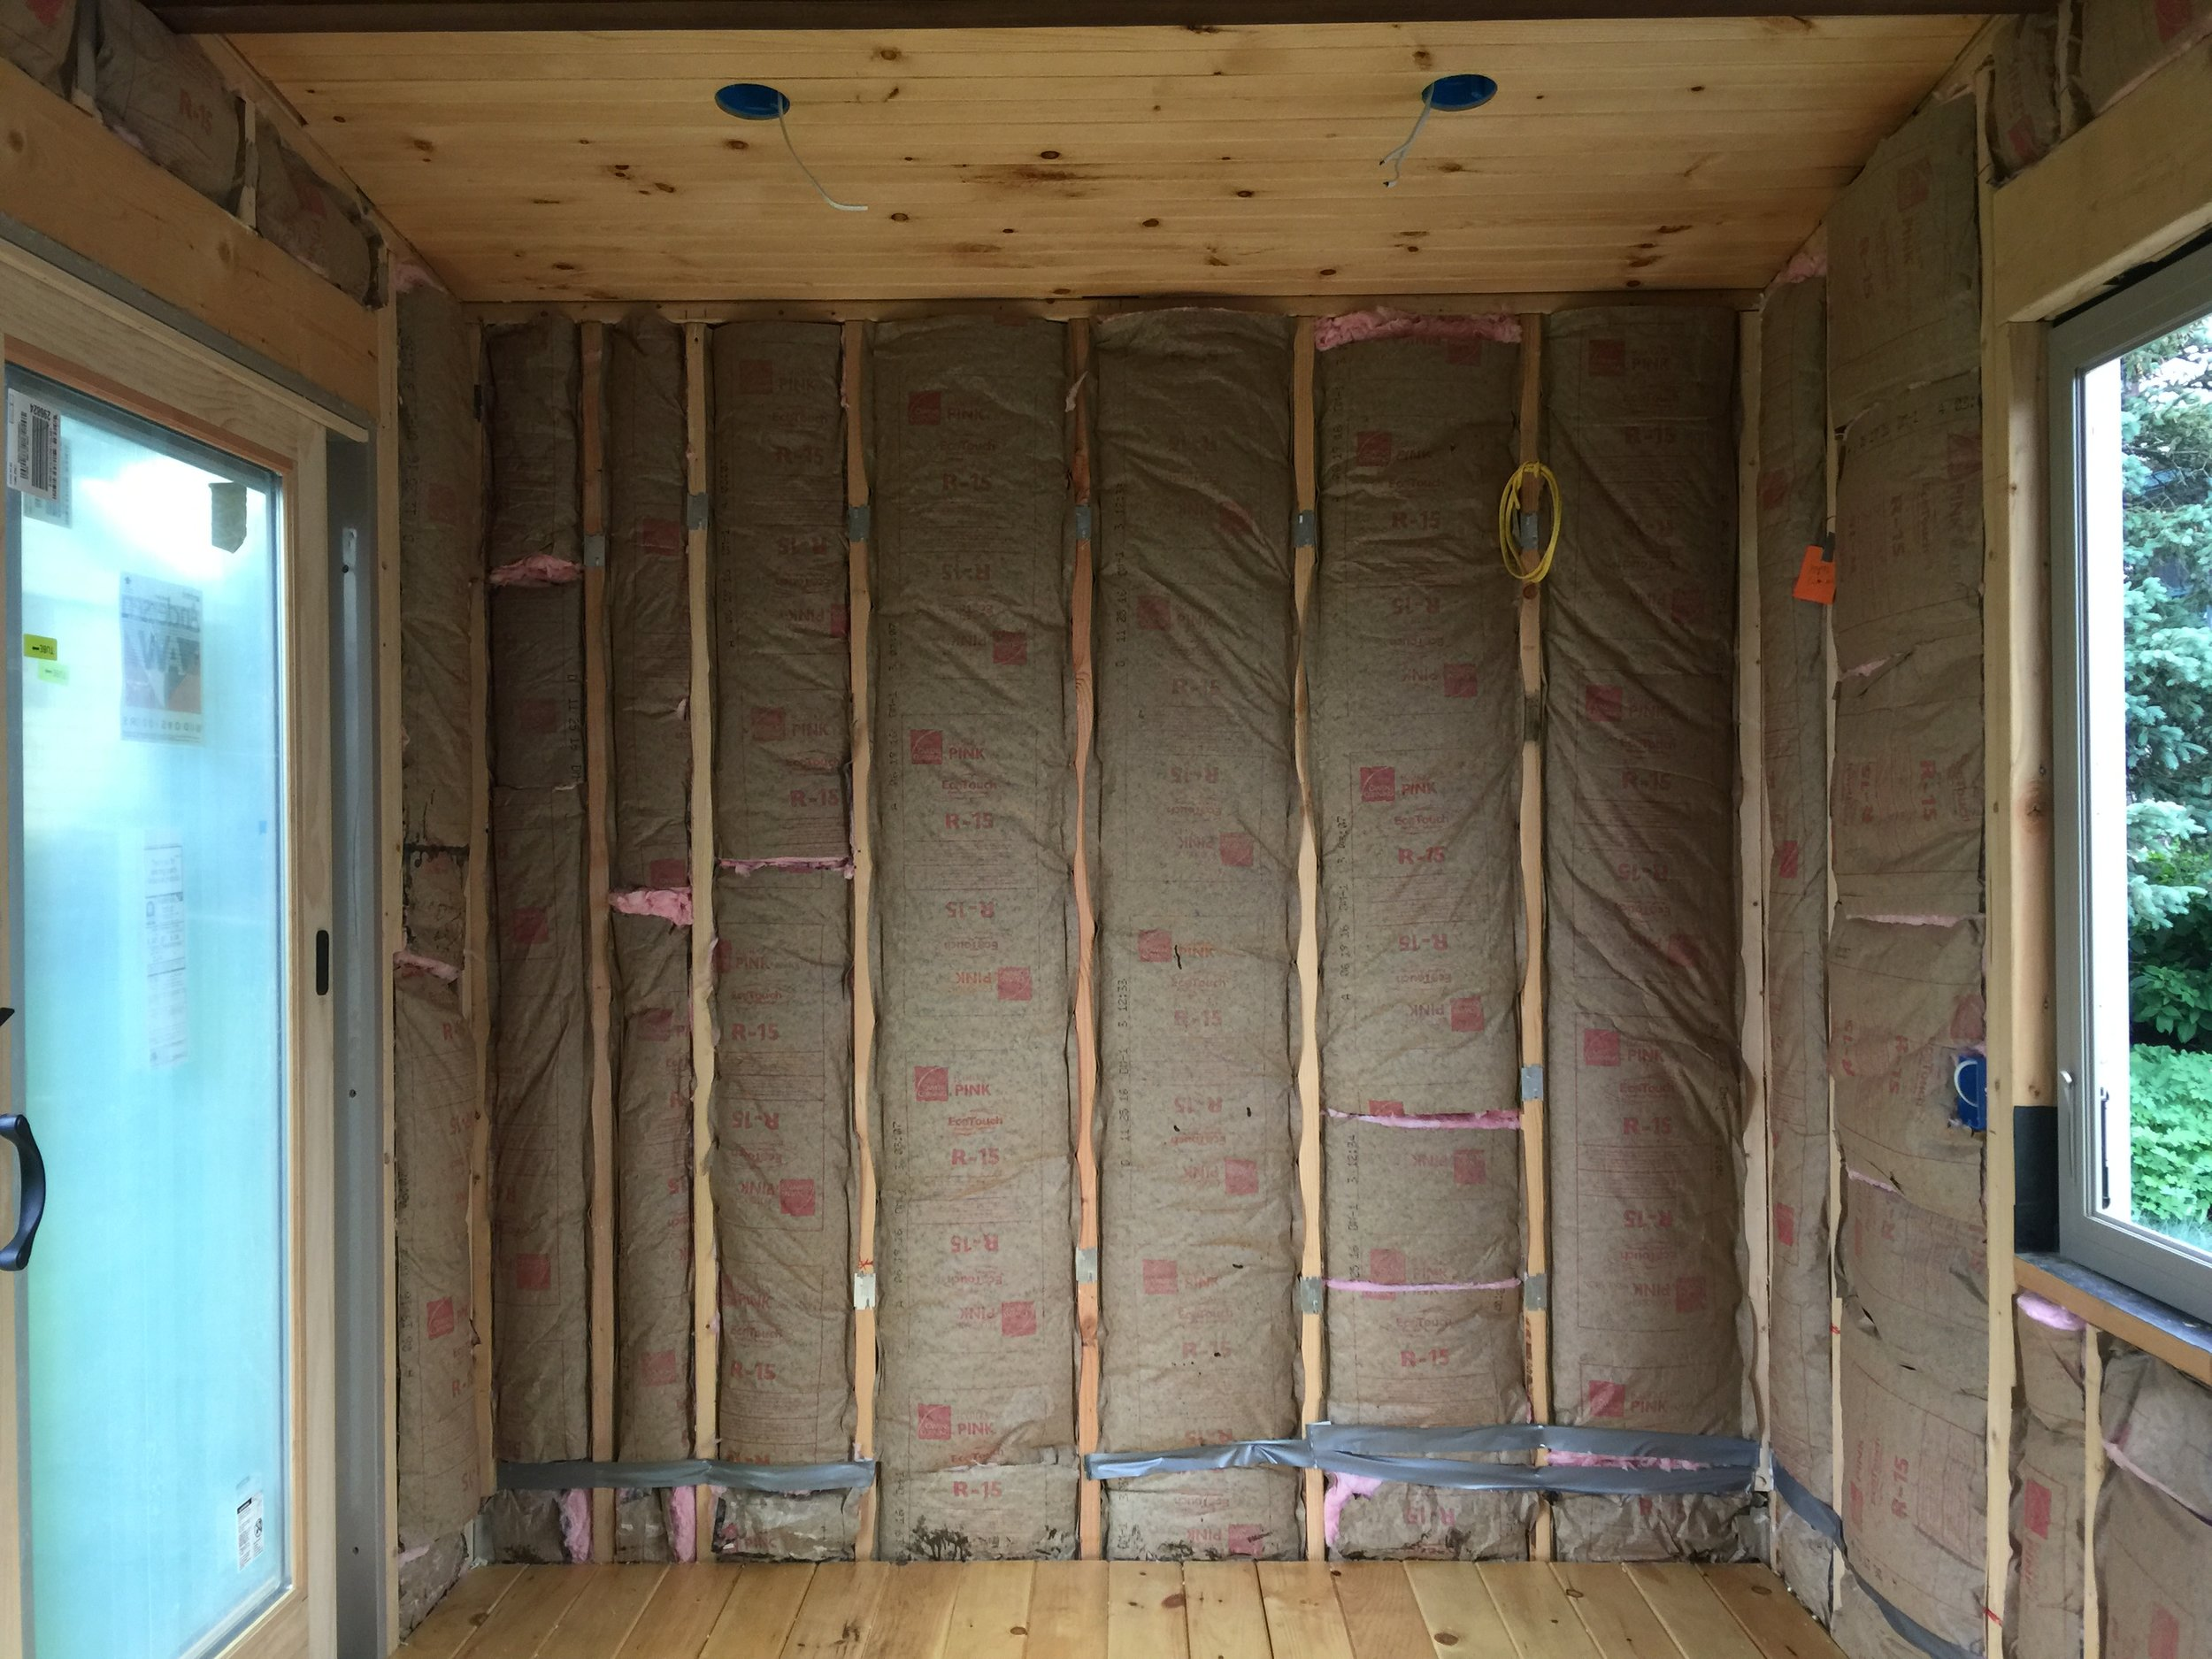 In order to be able to do finish insulation, things needed to be thought out, such as nailers for eventual shelving, supports for wall cabinets, bracing for the stairs to be attached to. With a few of those things still remaining to be done, we're almost ready to install the wall board in areas that won't be affected by plumbing installation. Note that were wires run through studs, although we run them back as far as possible on the stud, for future safety reasons, i put metal plates on the stud edge to prevent accidentally damaging the wires.